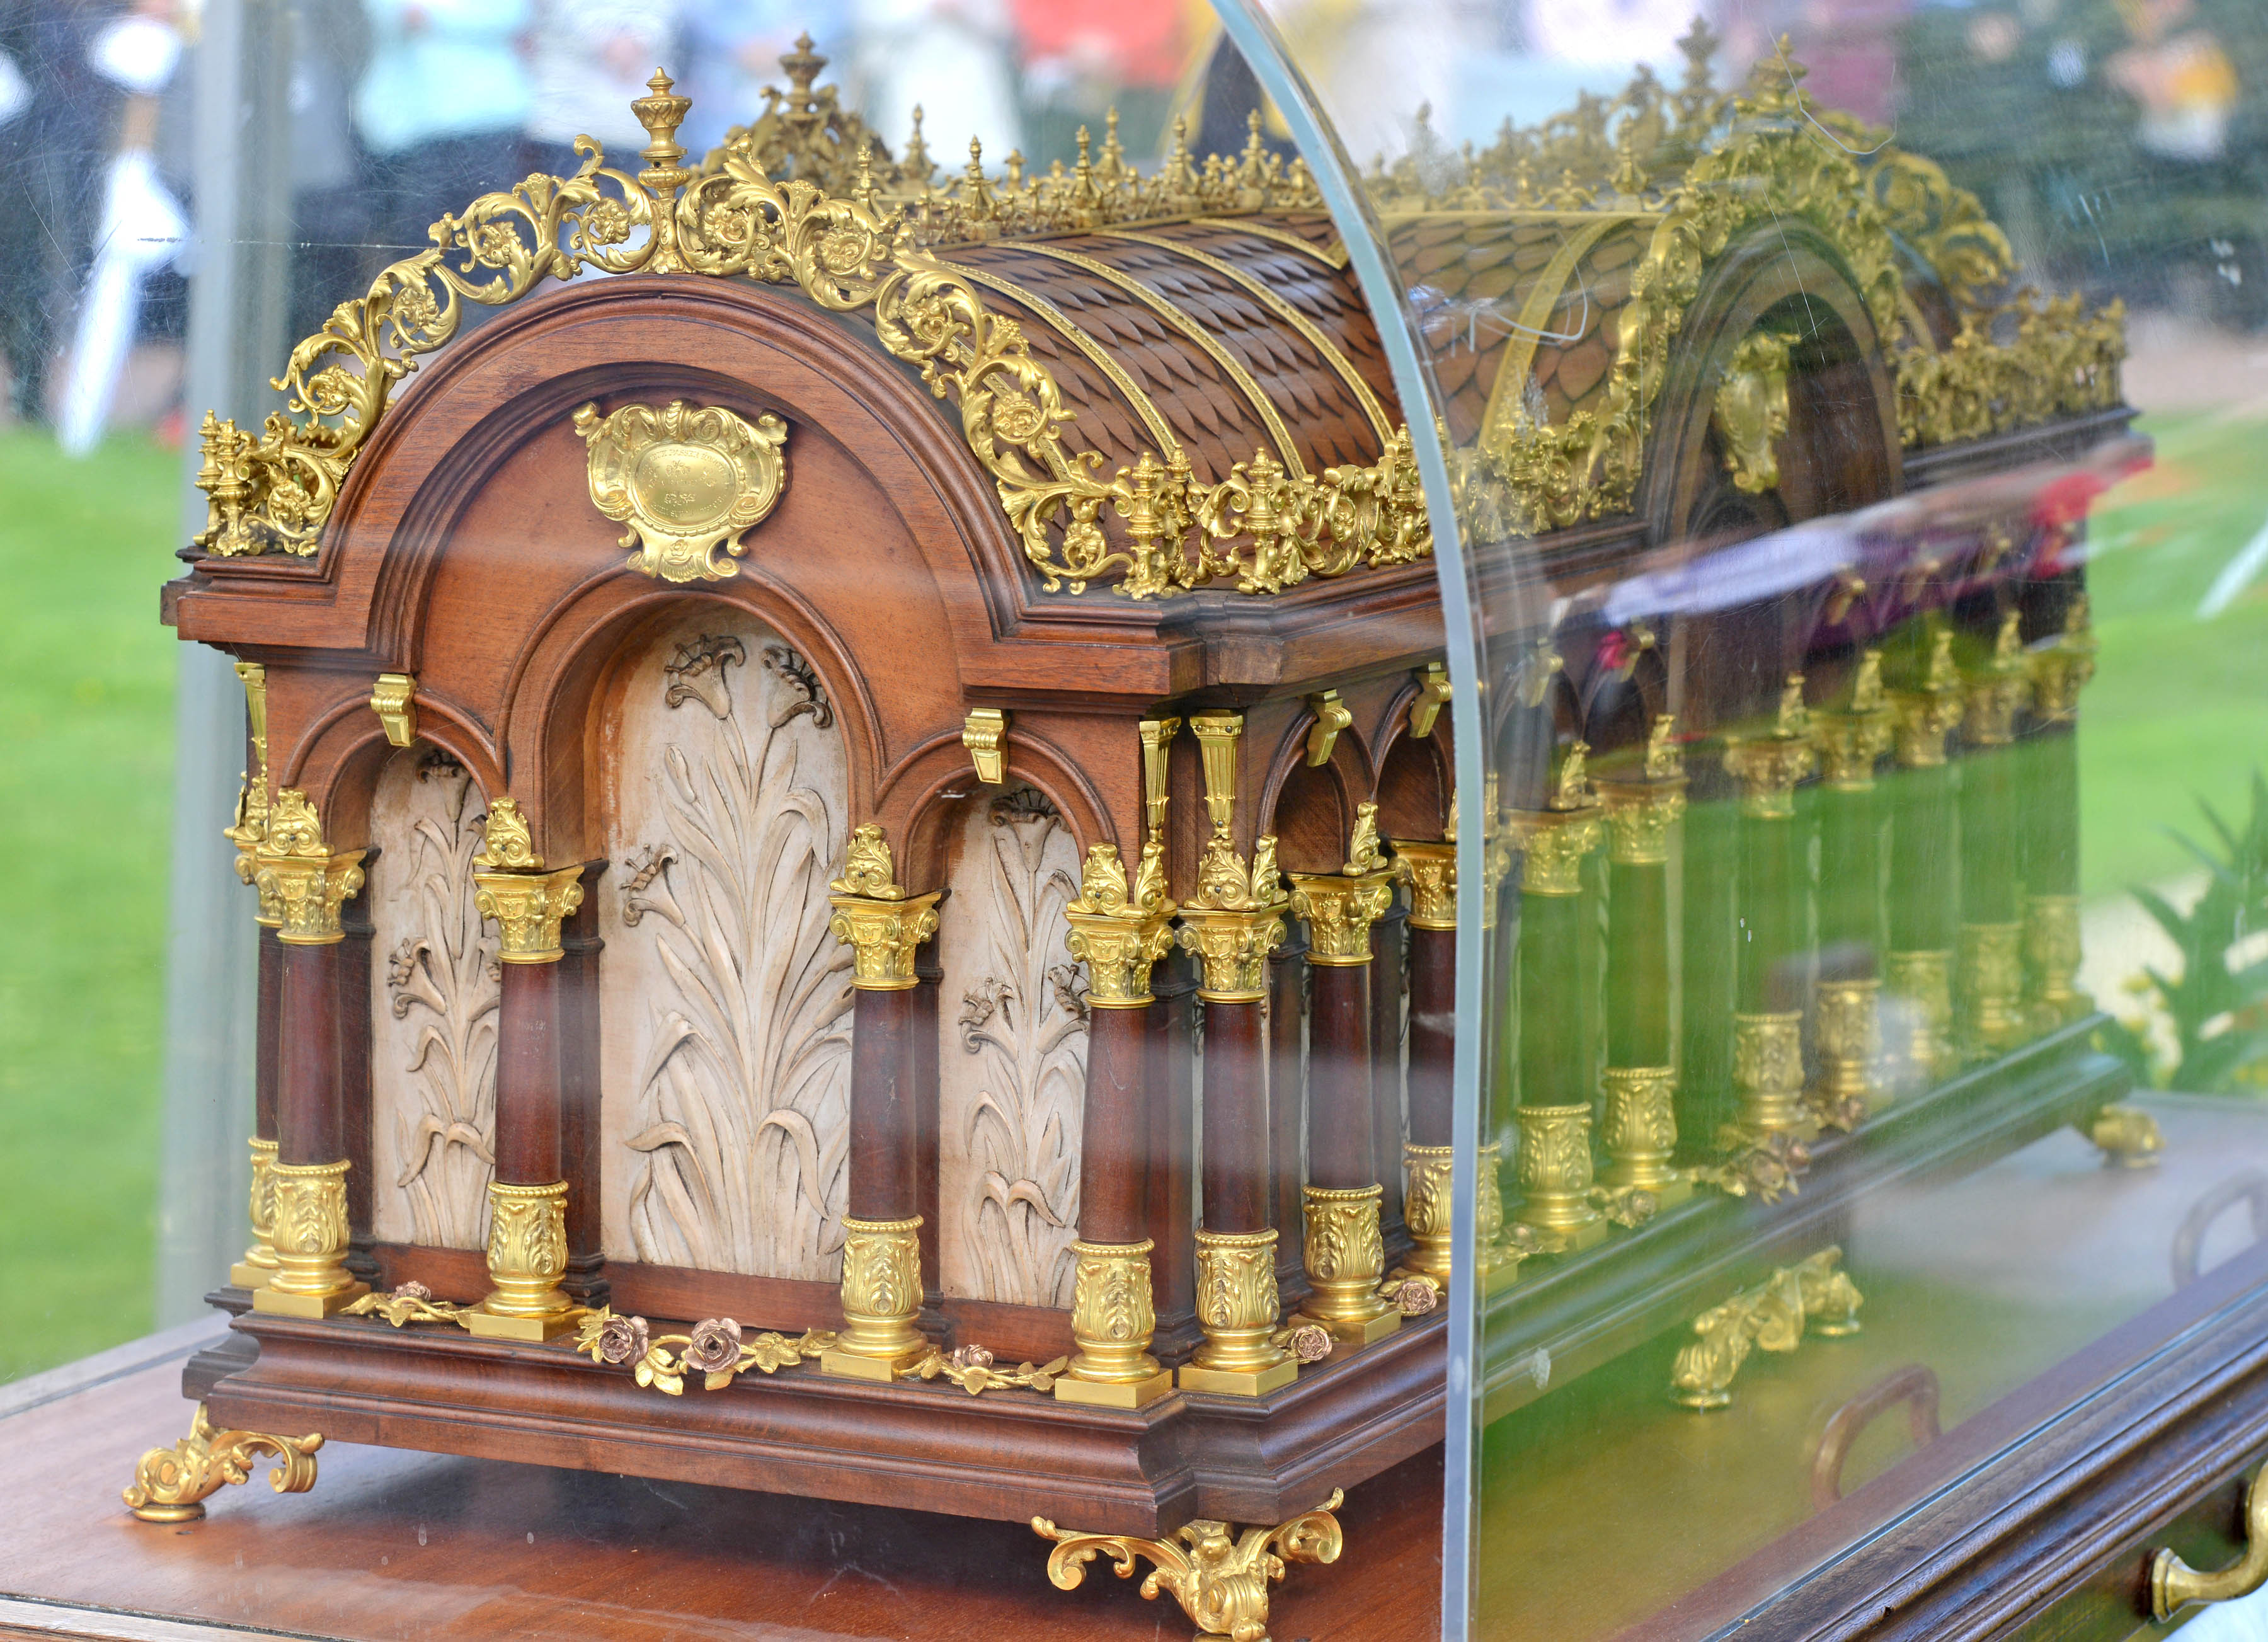 Relics of Saint Therese of Lisieux. Picture by Paul McSherry.